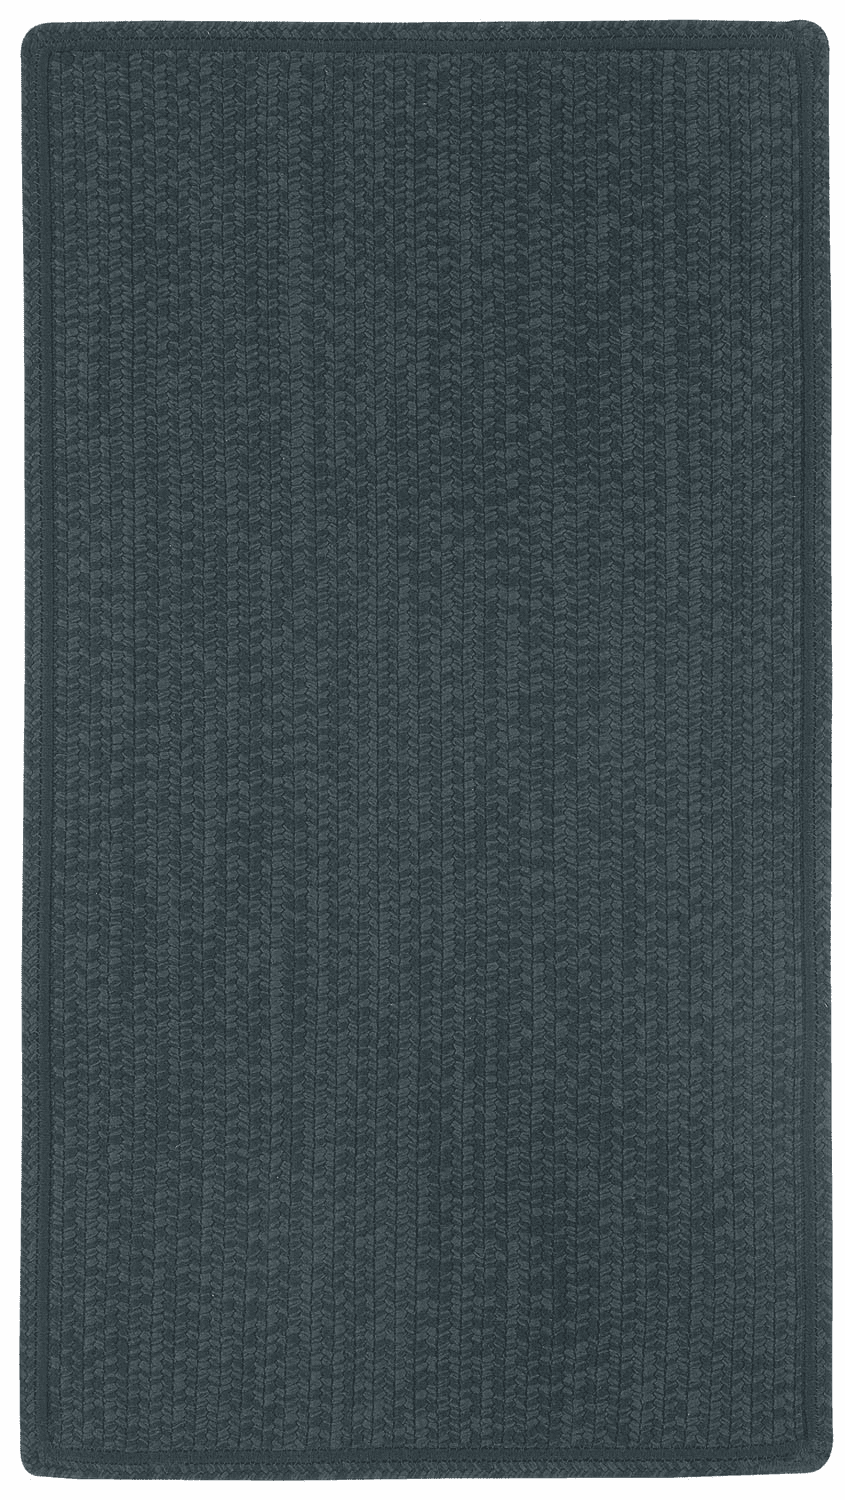 Hand-Braided Black Rug